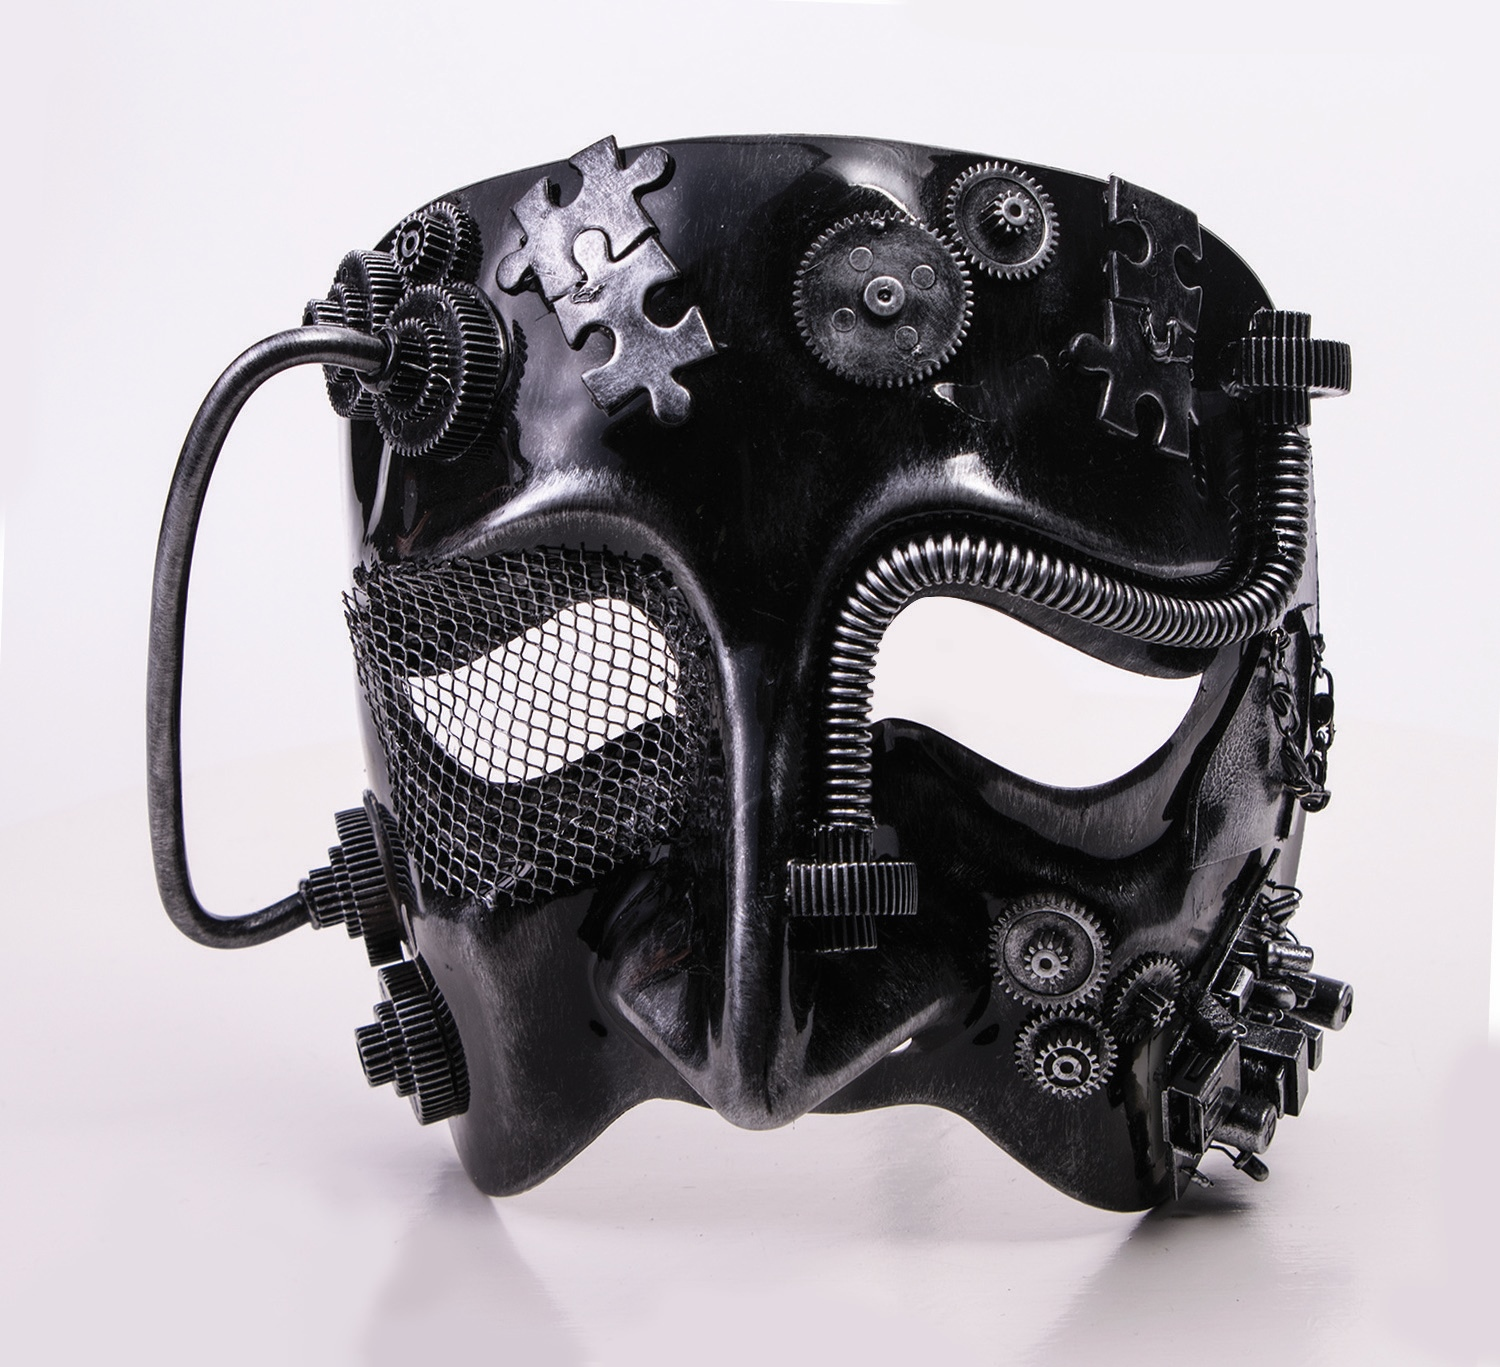 Victorian Industrial Steampunk Black Tragedy Half Mask